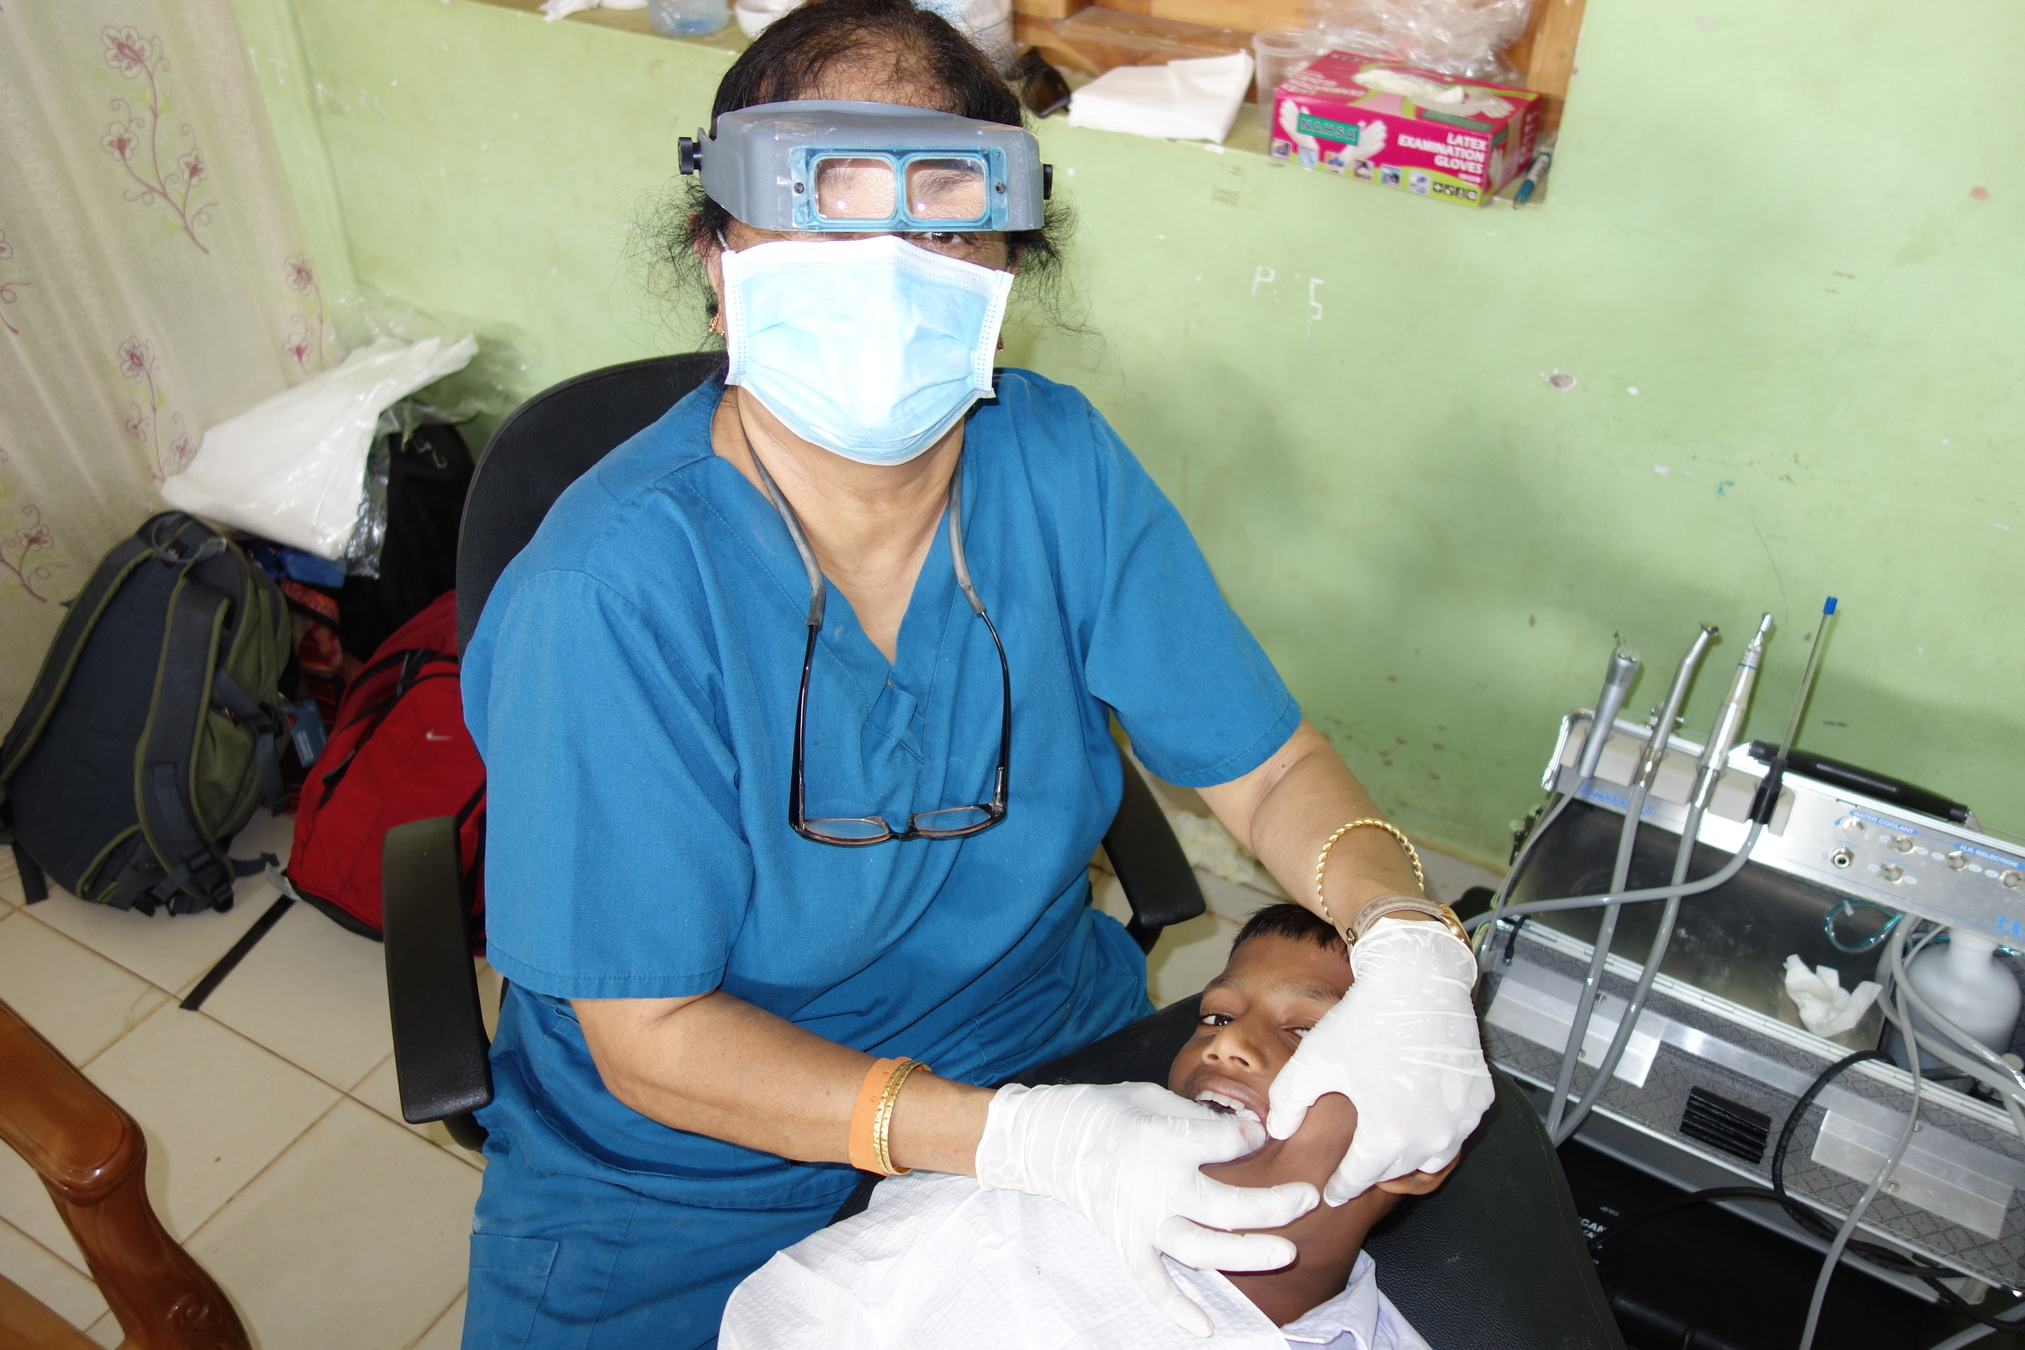 Dental Care International (DCI) Mobile dental care to provide free dental care to children in Mullaitivu, Sri Lanka. Dentists, hygienists, dental assistants